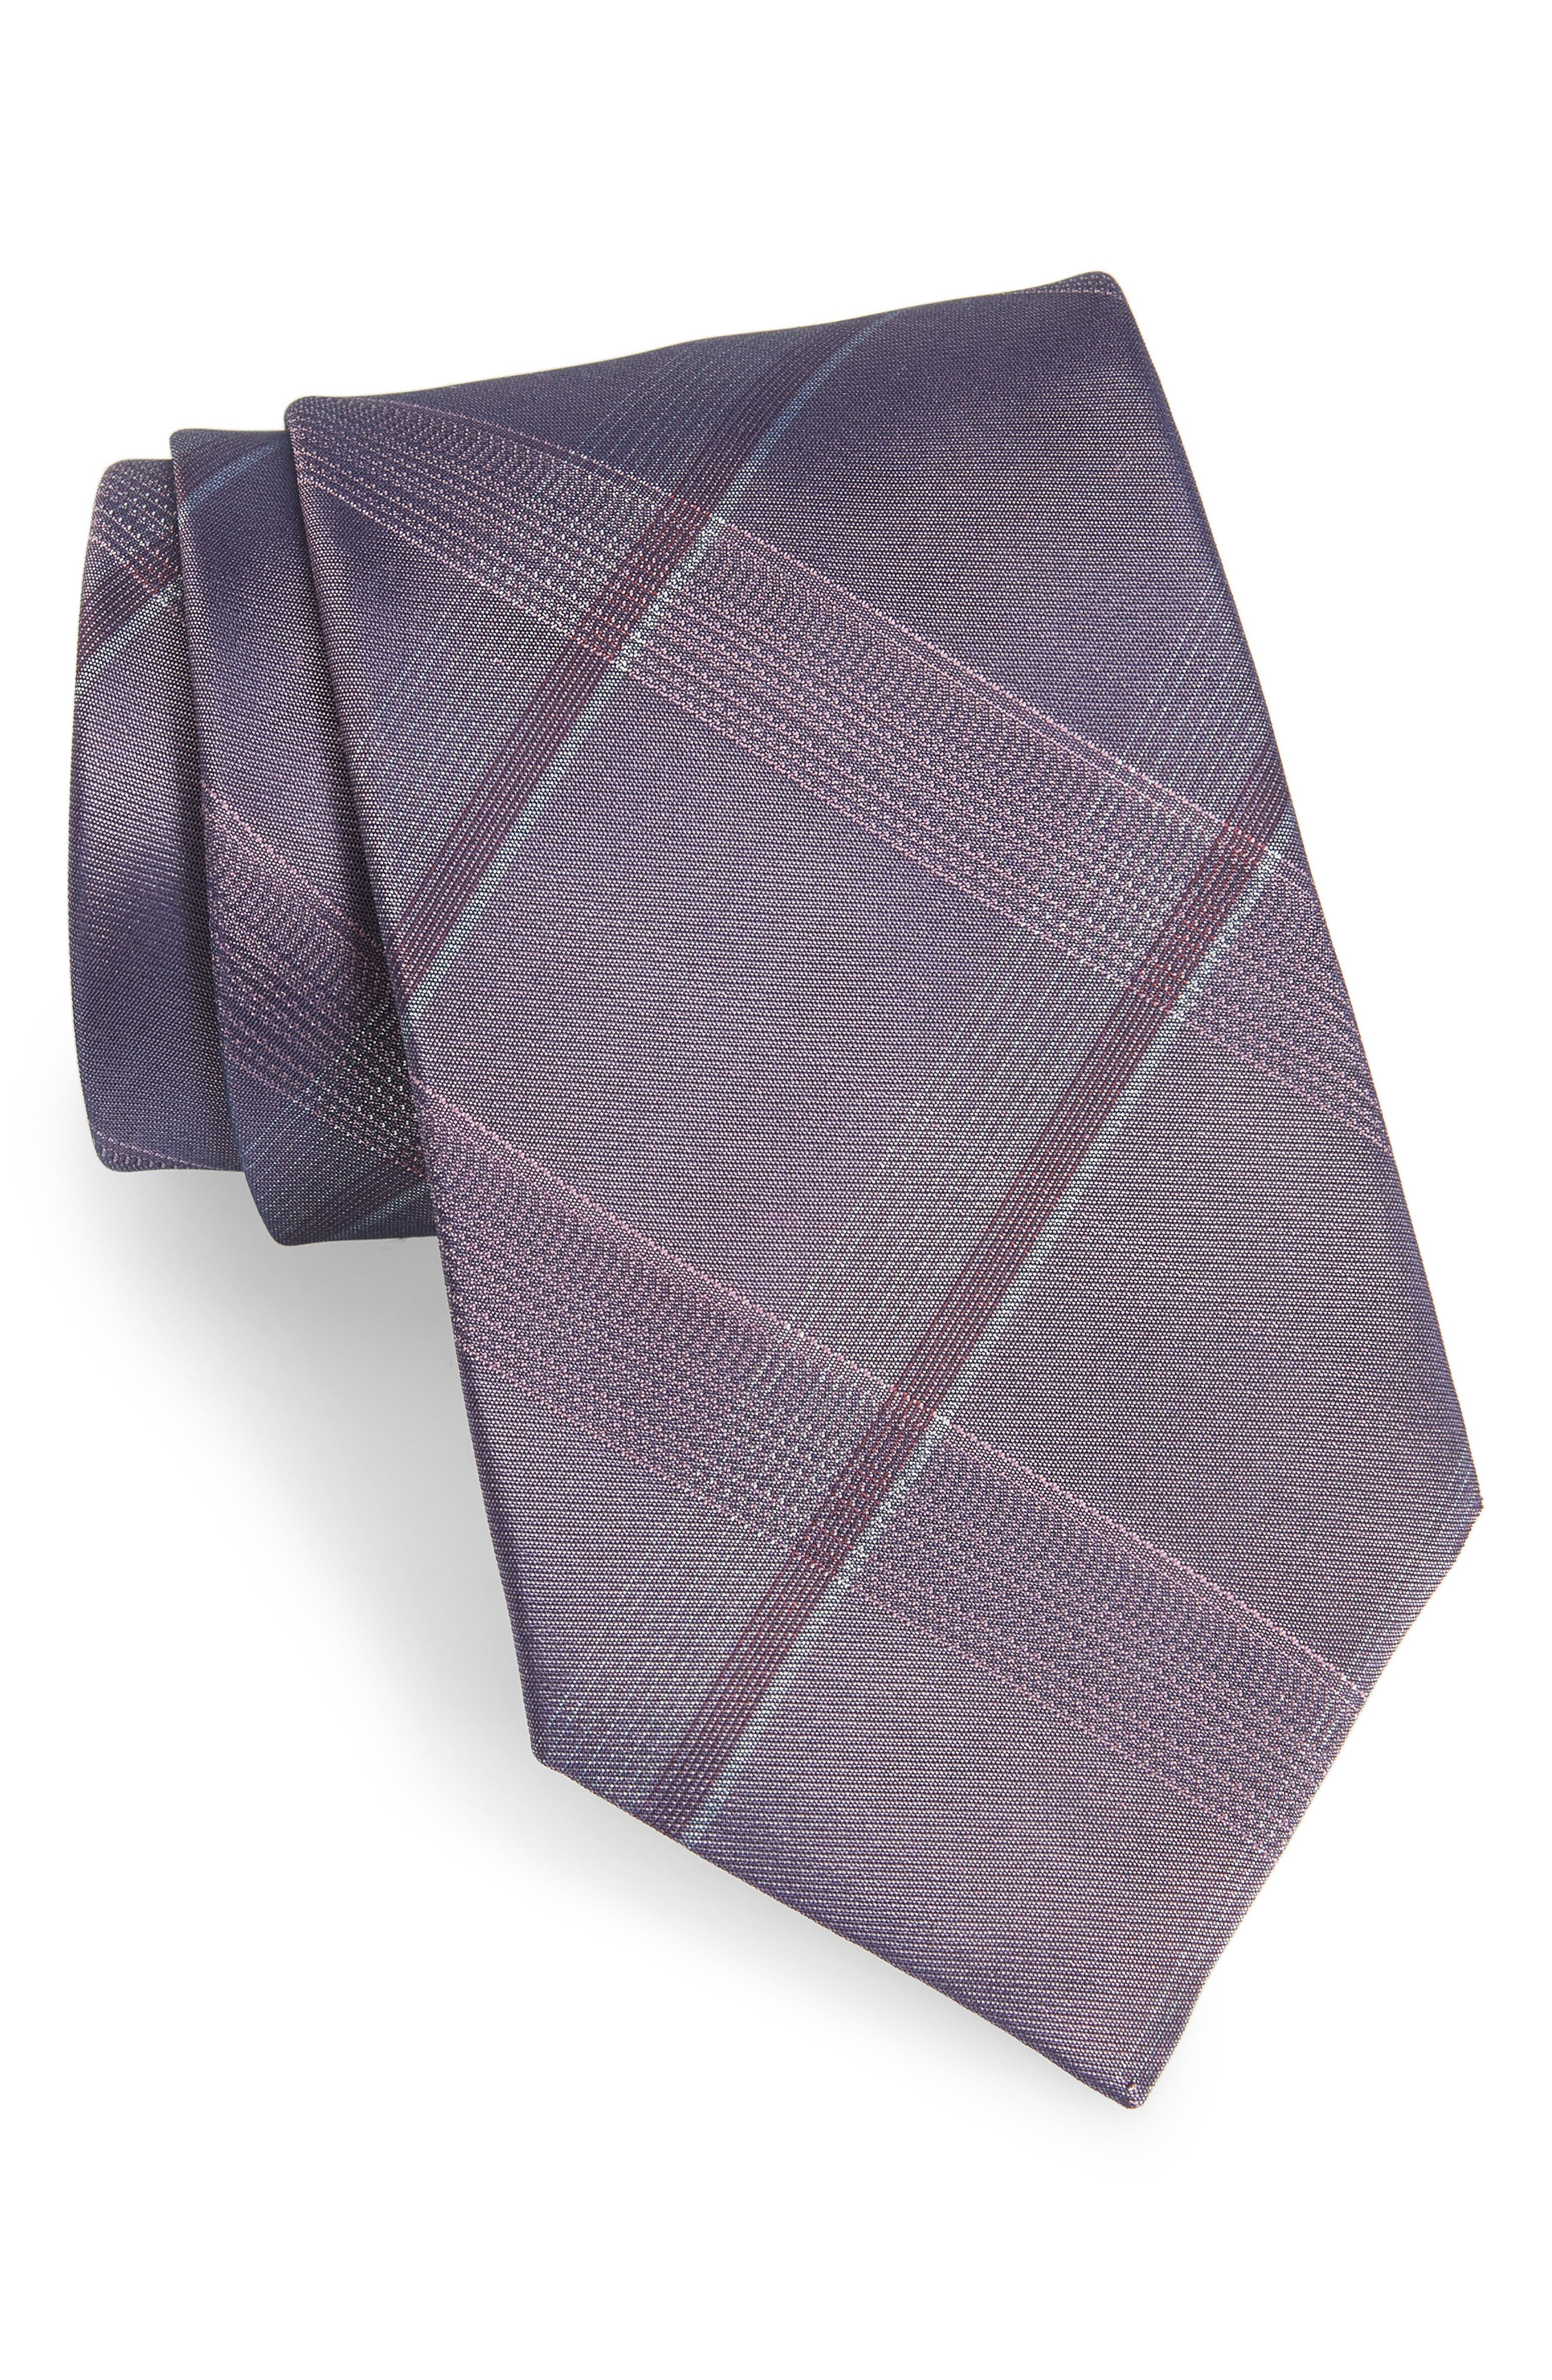 Plaid Silk Tie,                         Main,                         color, Purple